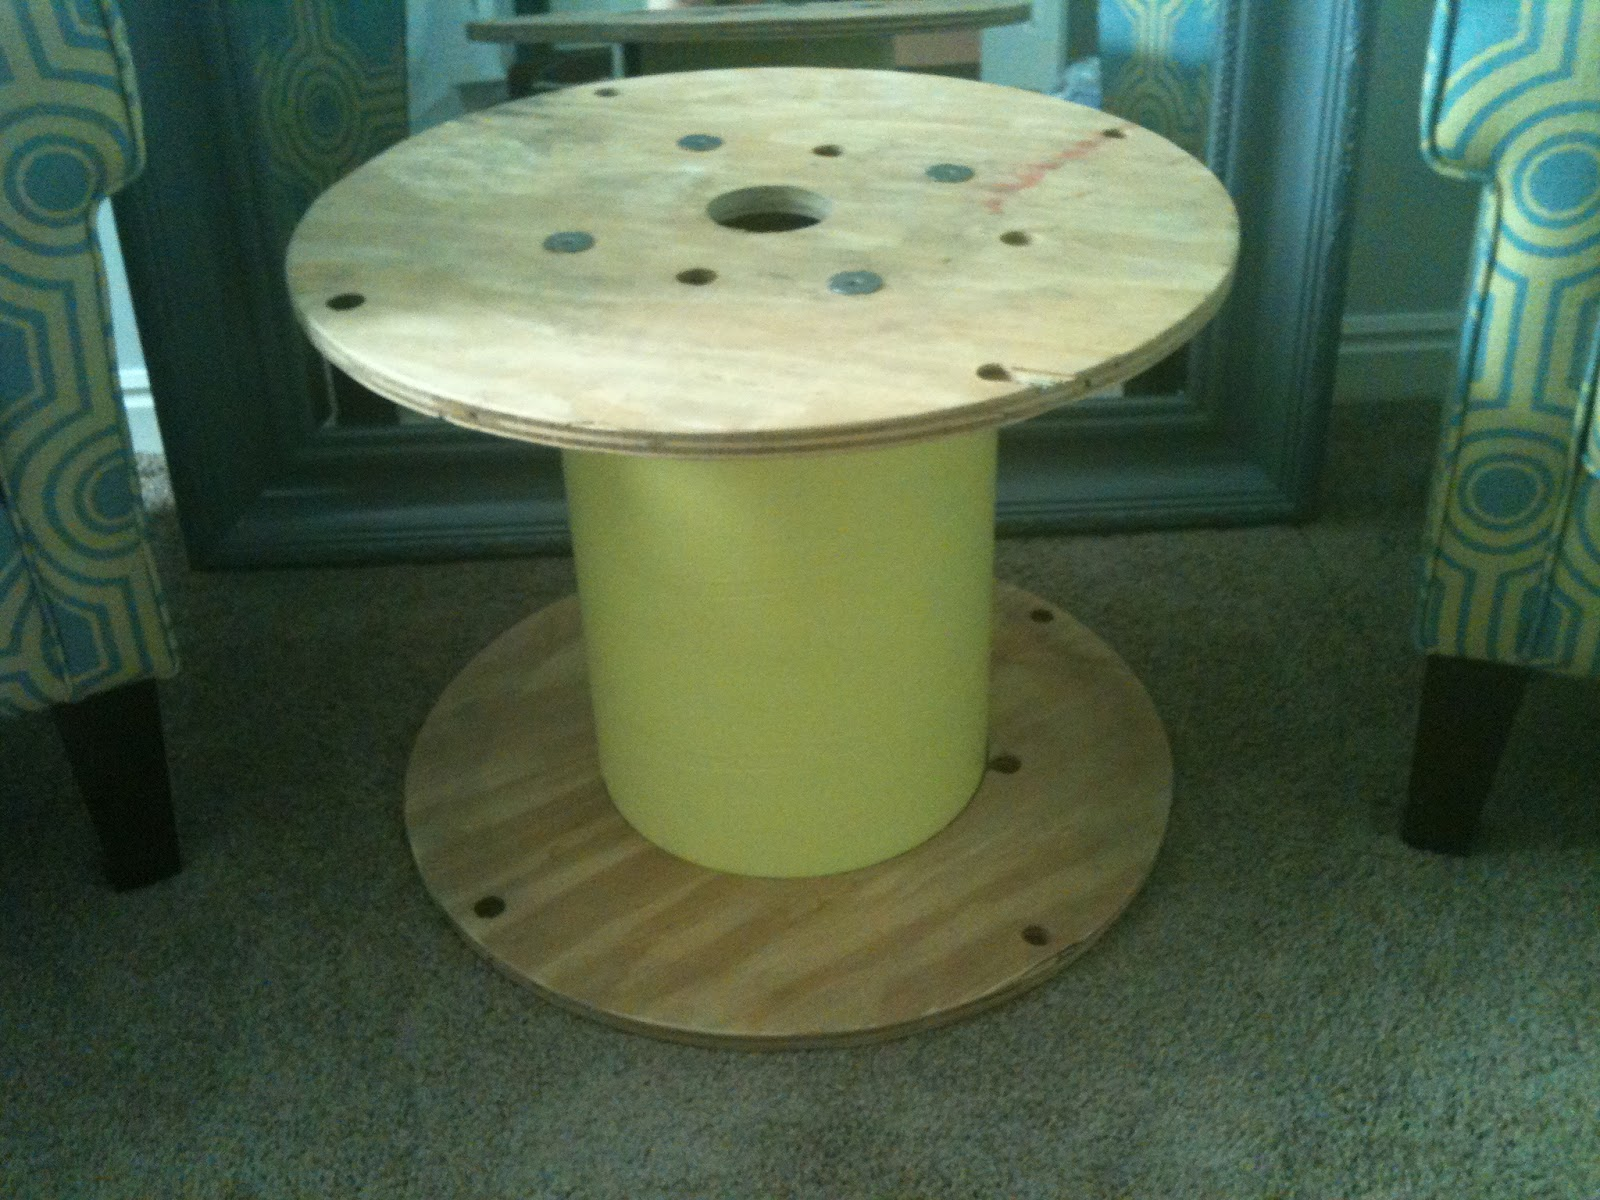 I Am Momma - Hear Me Roar: Where to Find a Wooden Spool and How to ...